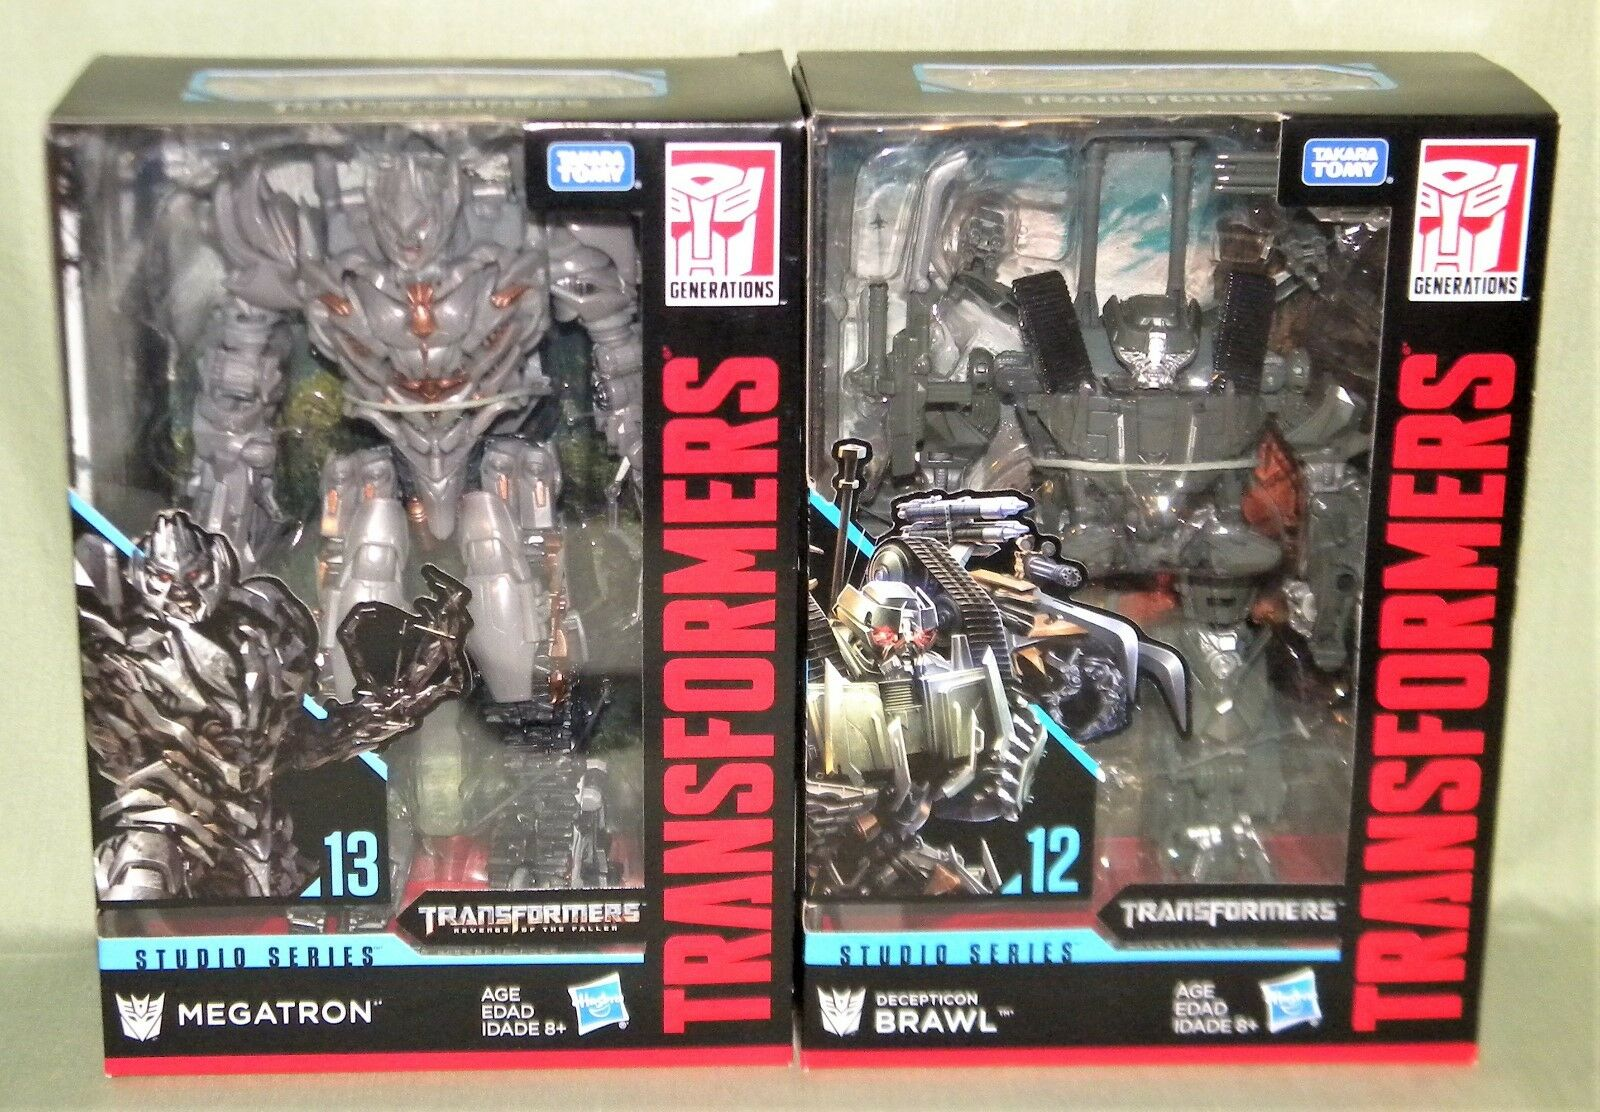 MEGATRON & BRAWN Transformers Studio Series Voyager 2018 SET OF 2 IN HAND